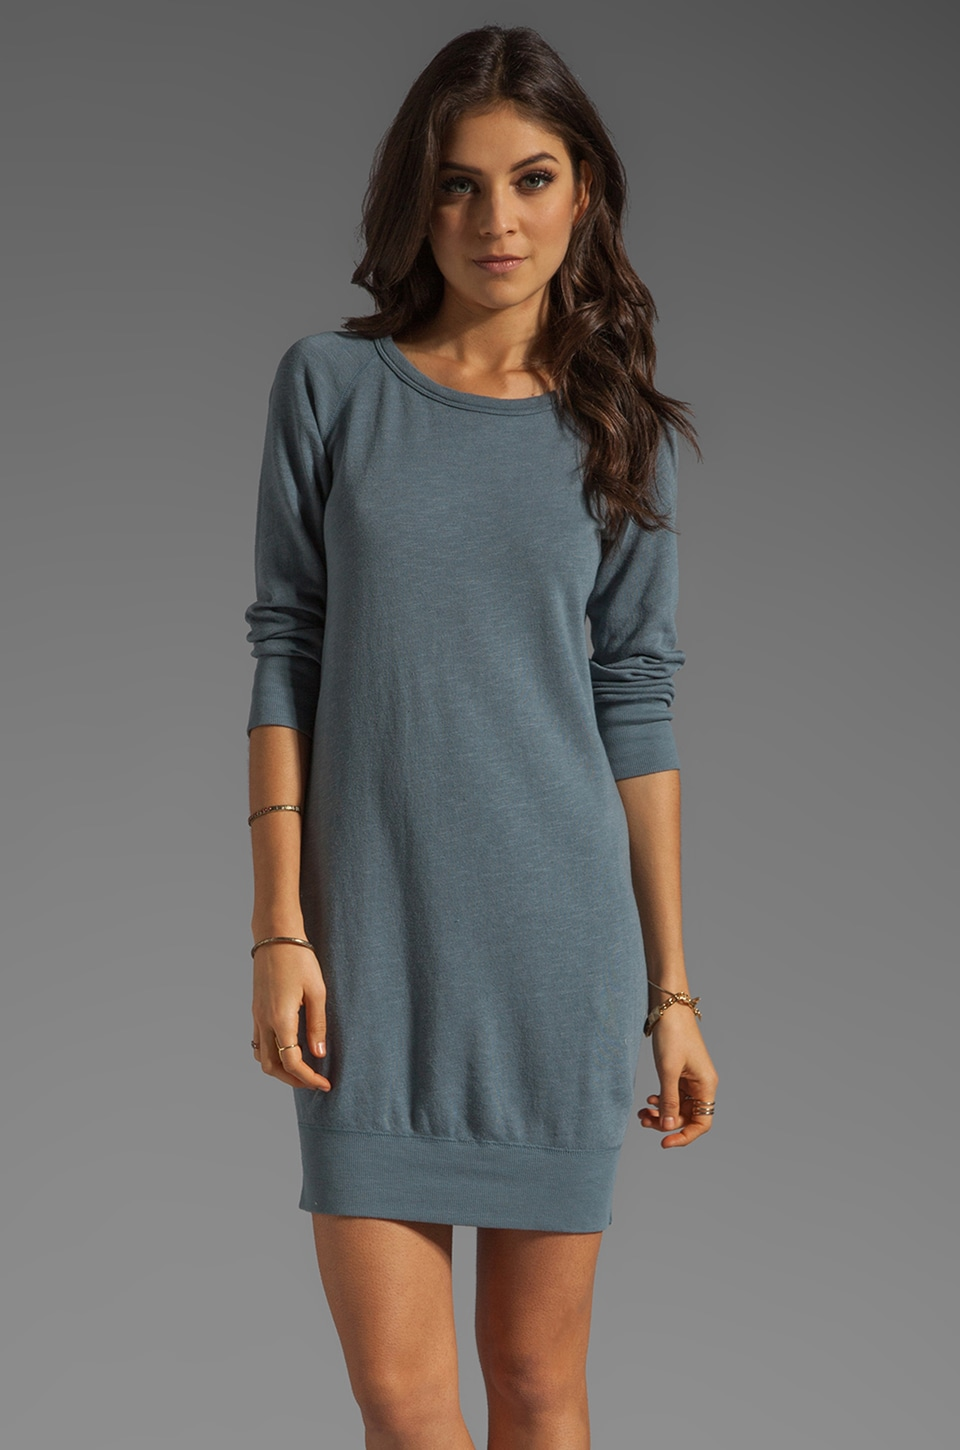 James Perse Raglan Sweatshirt Dress in Tempest